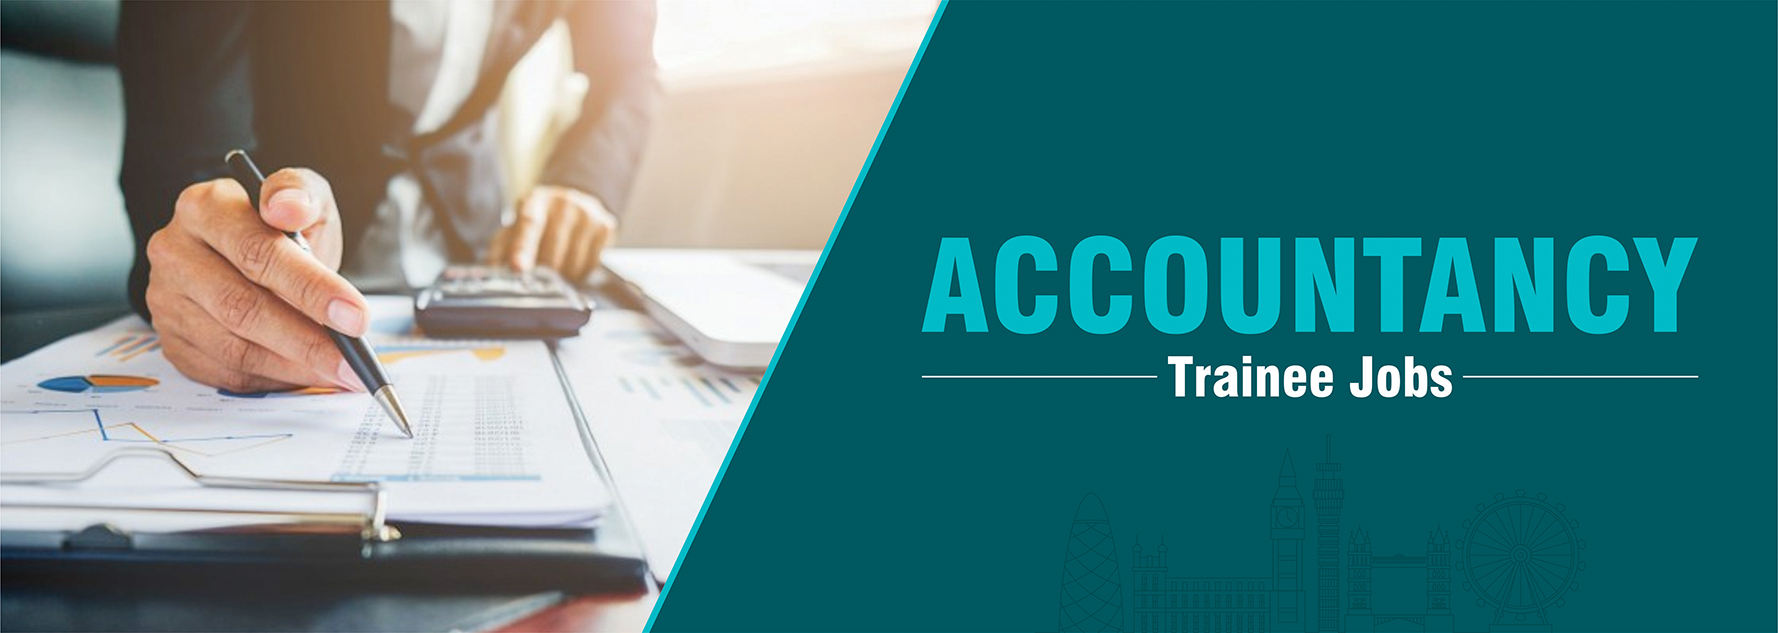 accountancy-trainee-jobs